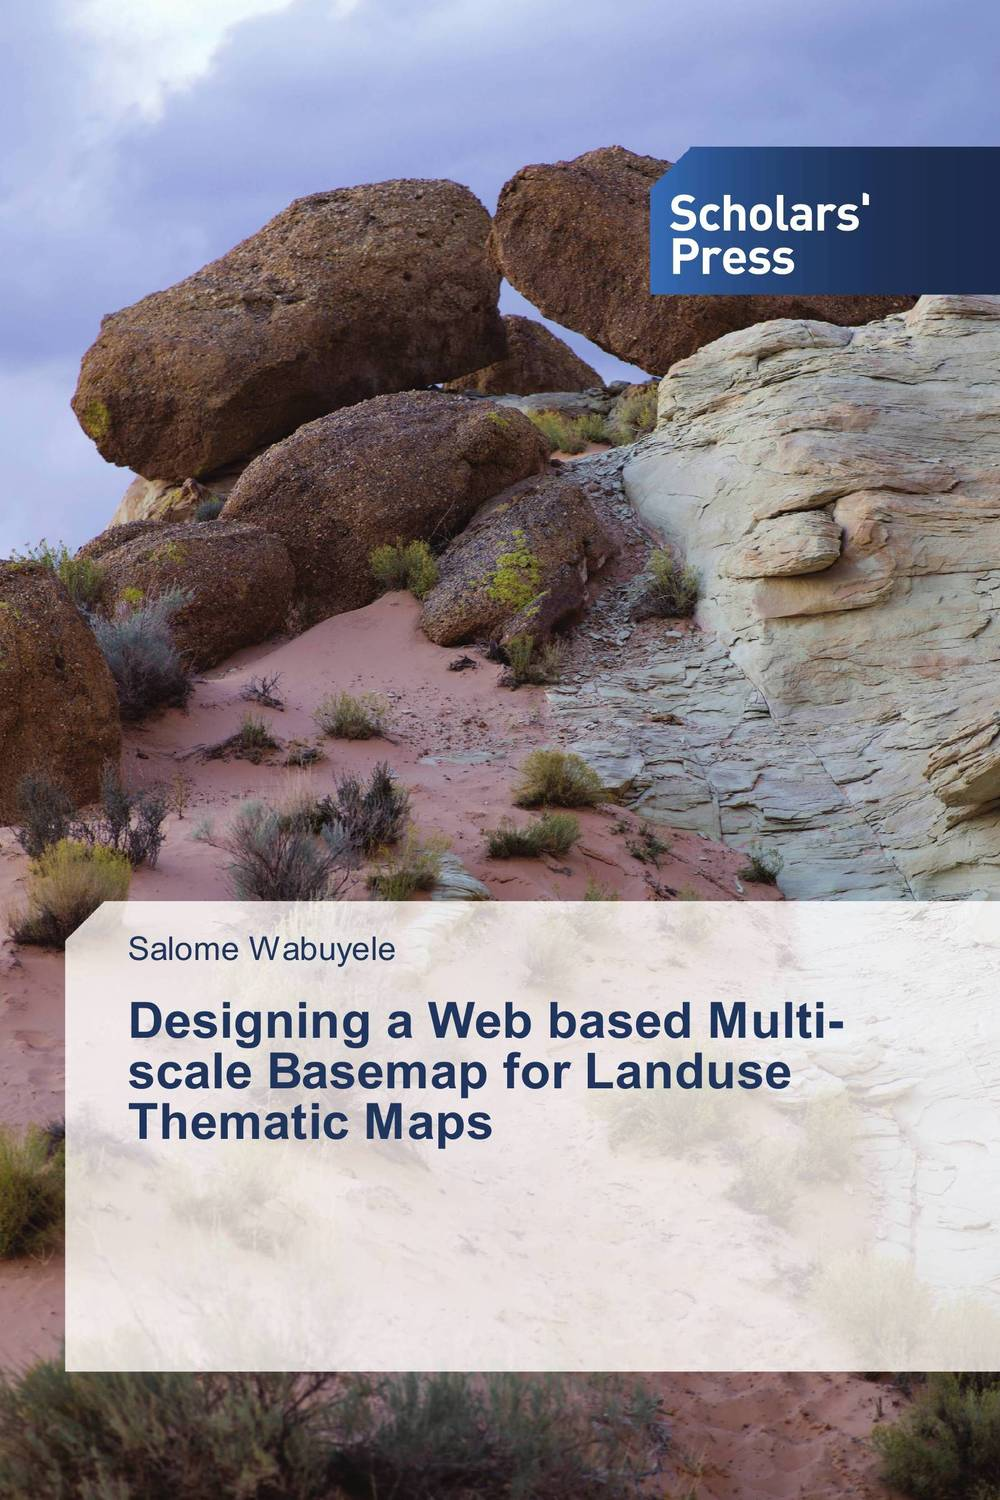 Designing a Web based Multi-scale Basemap for Landuse Thematic Maps overview of web based business